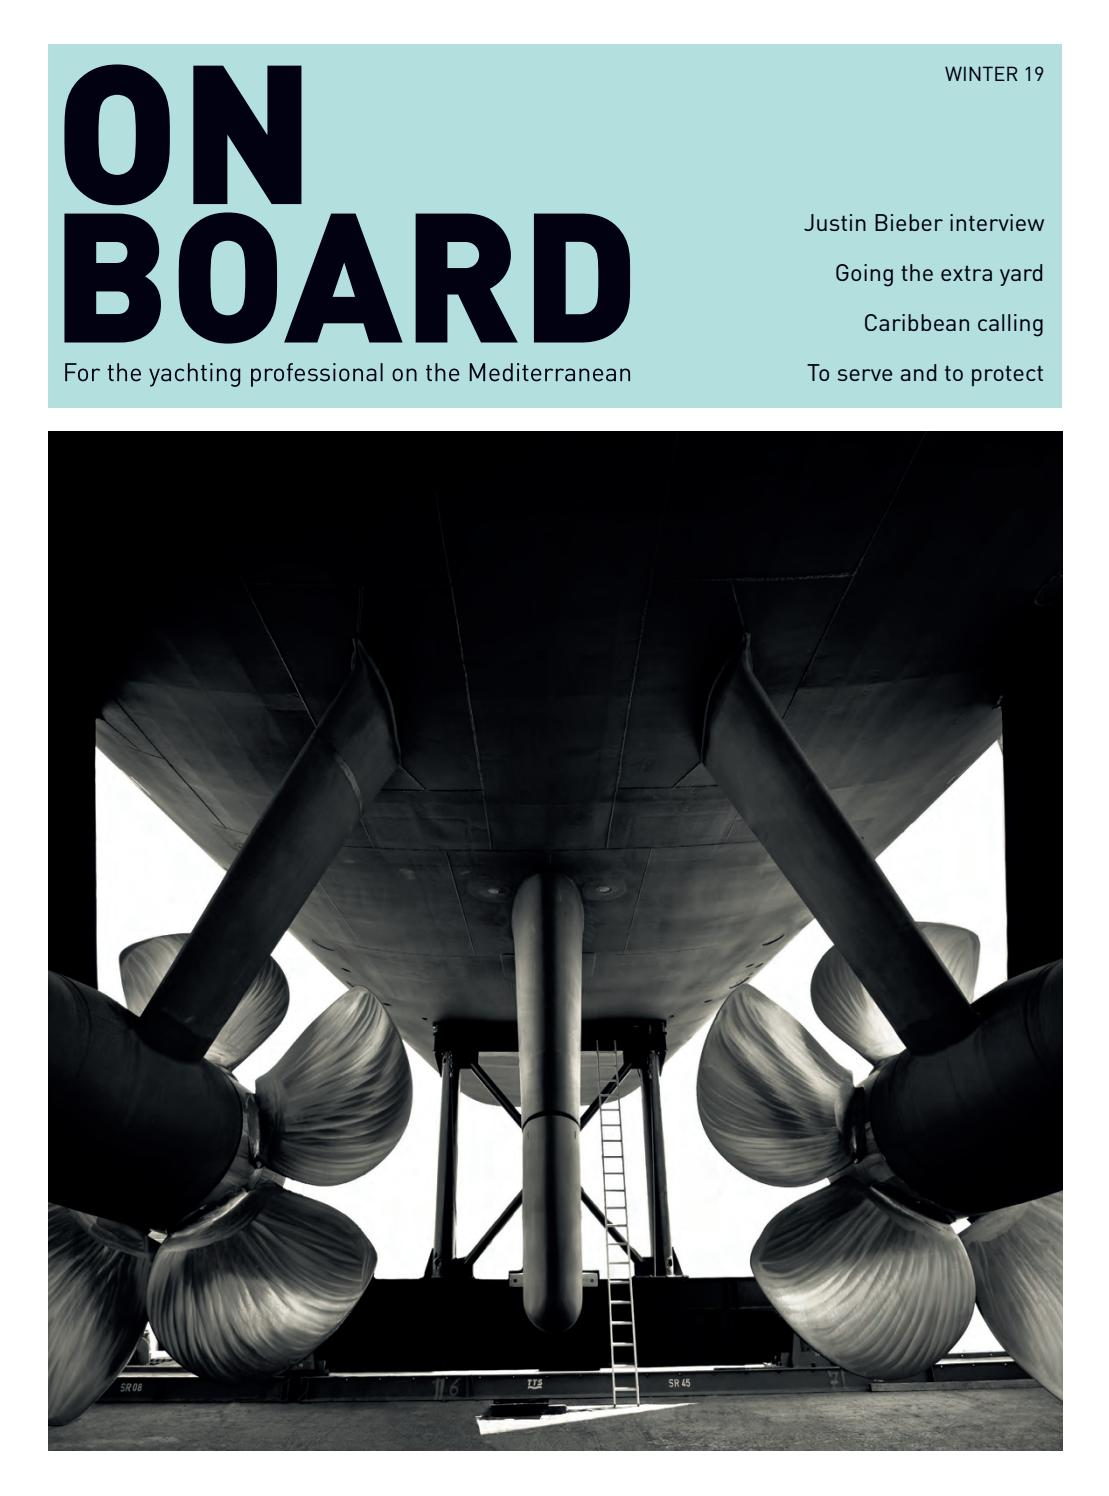 ONBOARD Magazine winter 2019 by Plum Publications - issuu